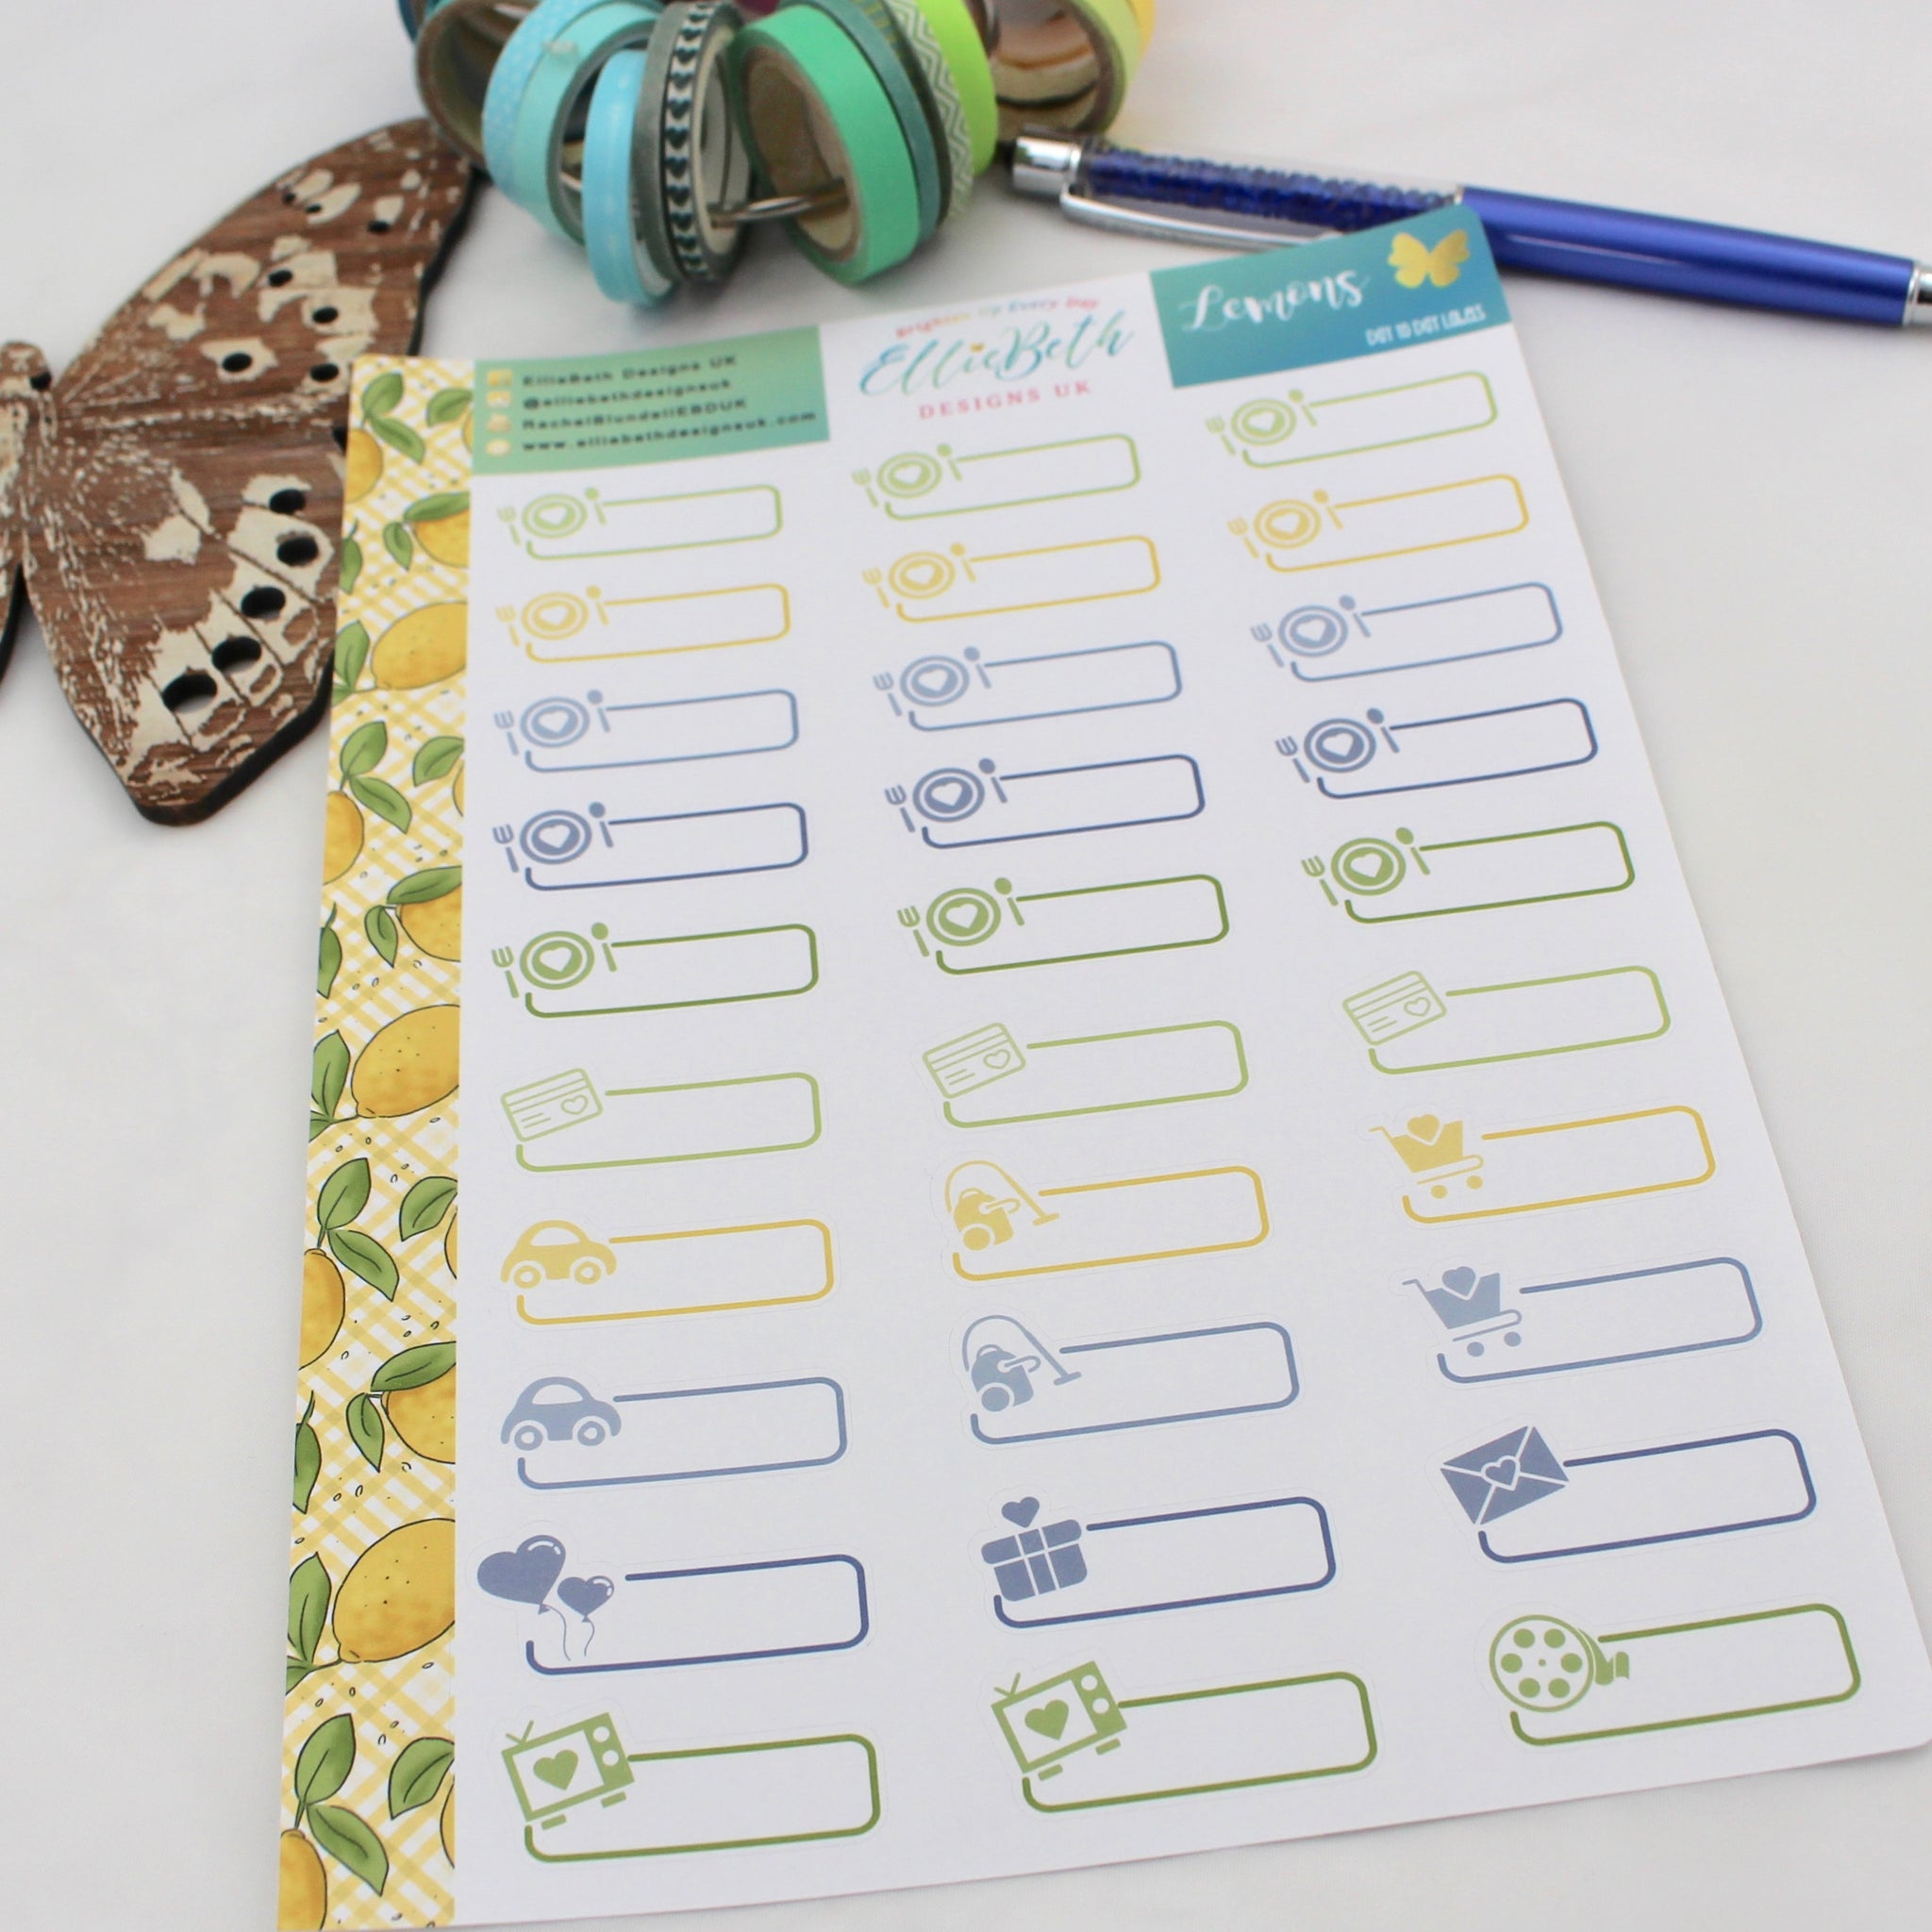 Lemons - Day to Day Labels - A5 binder ready planner stickers - EllieBeth Designs UK